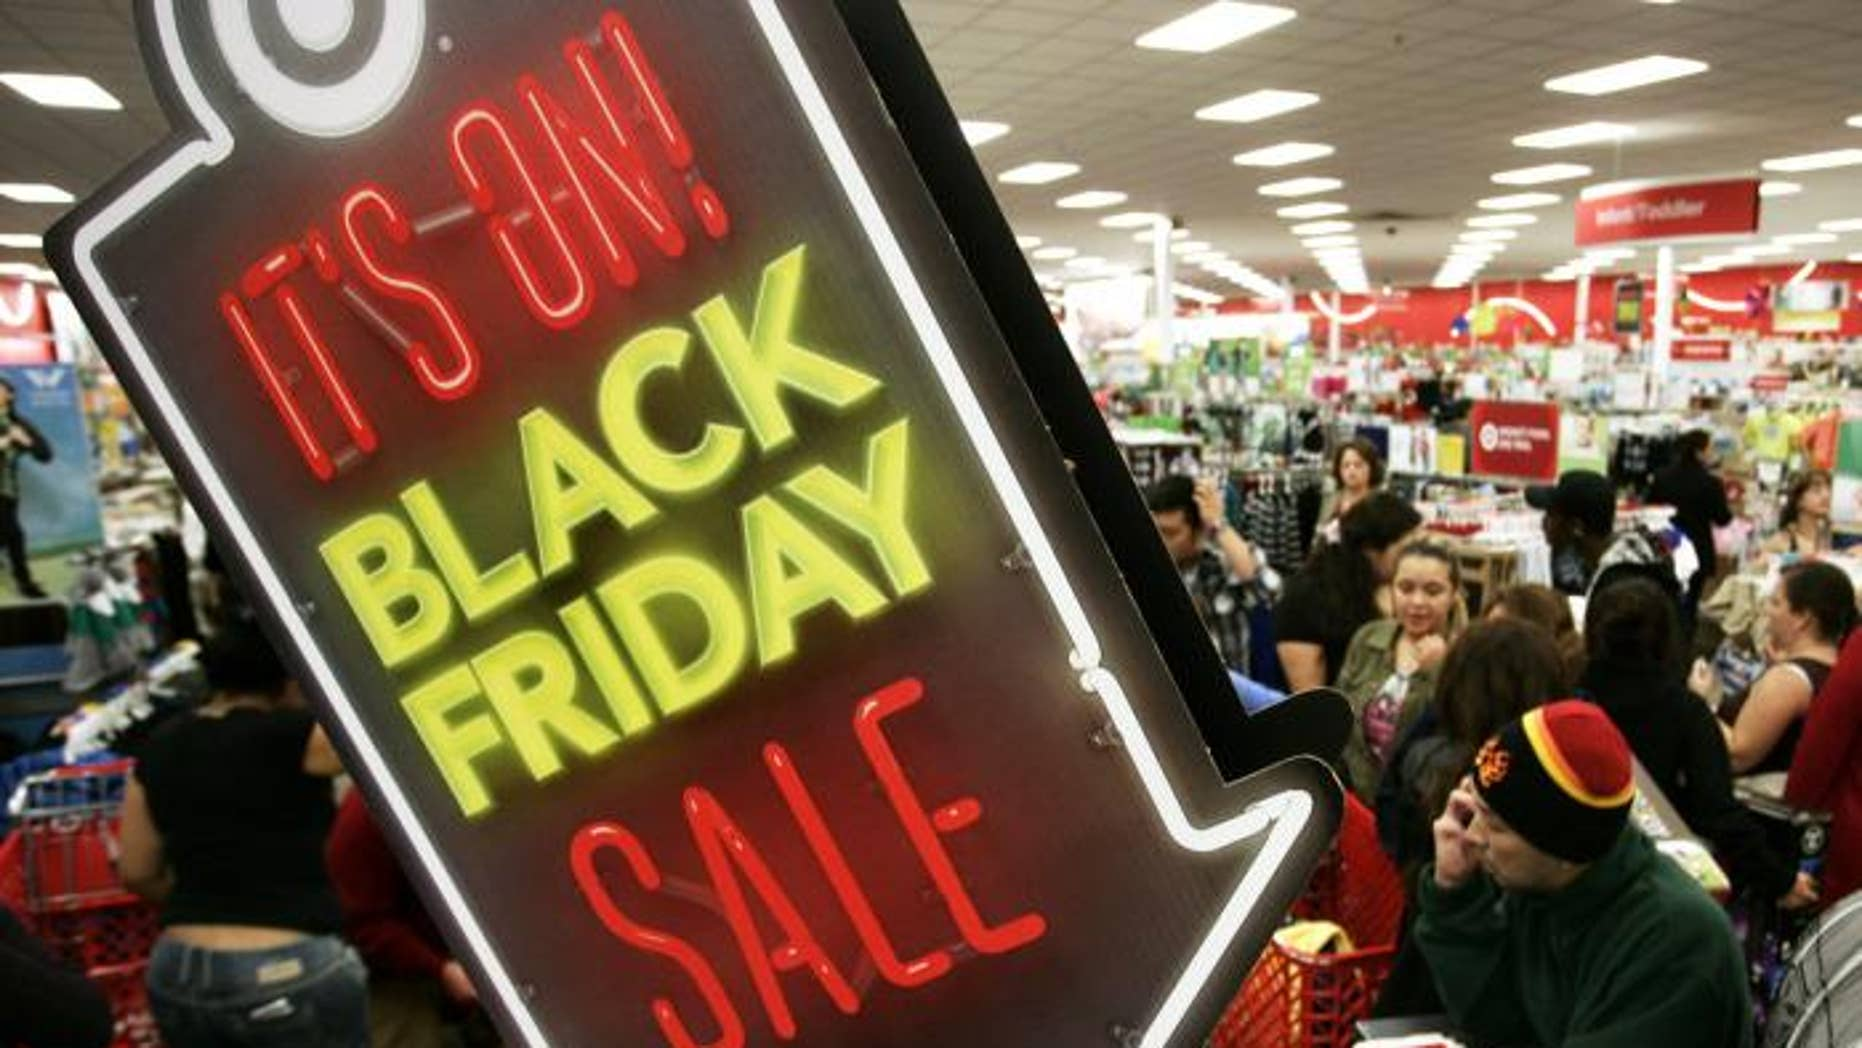 The average shopper said they'd travel to three different stores just to snag deals.